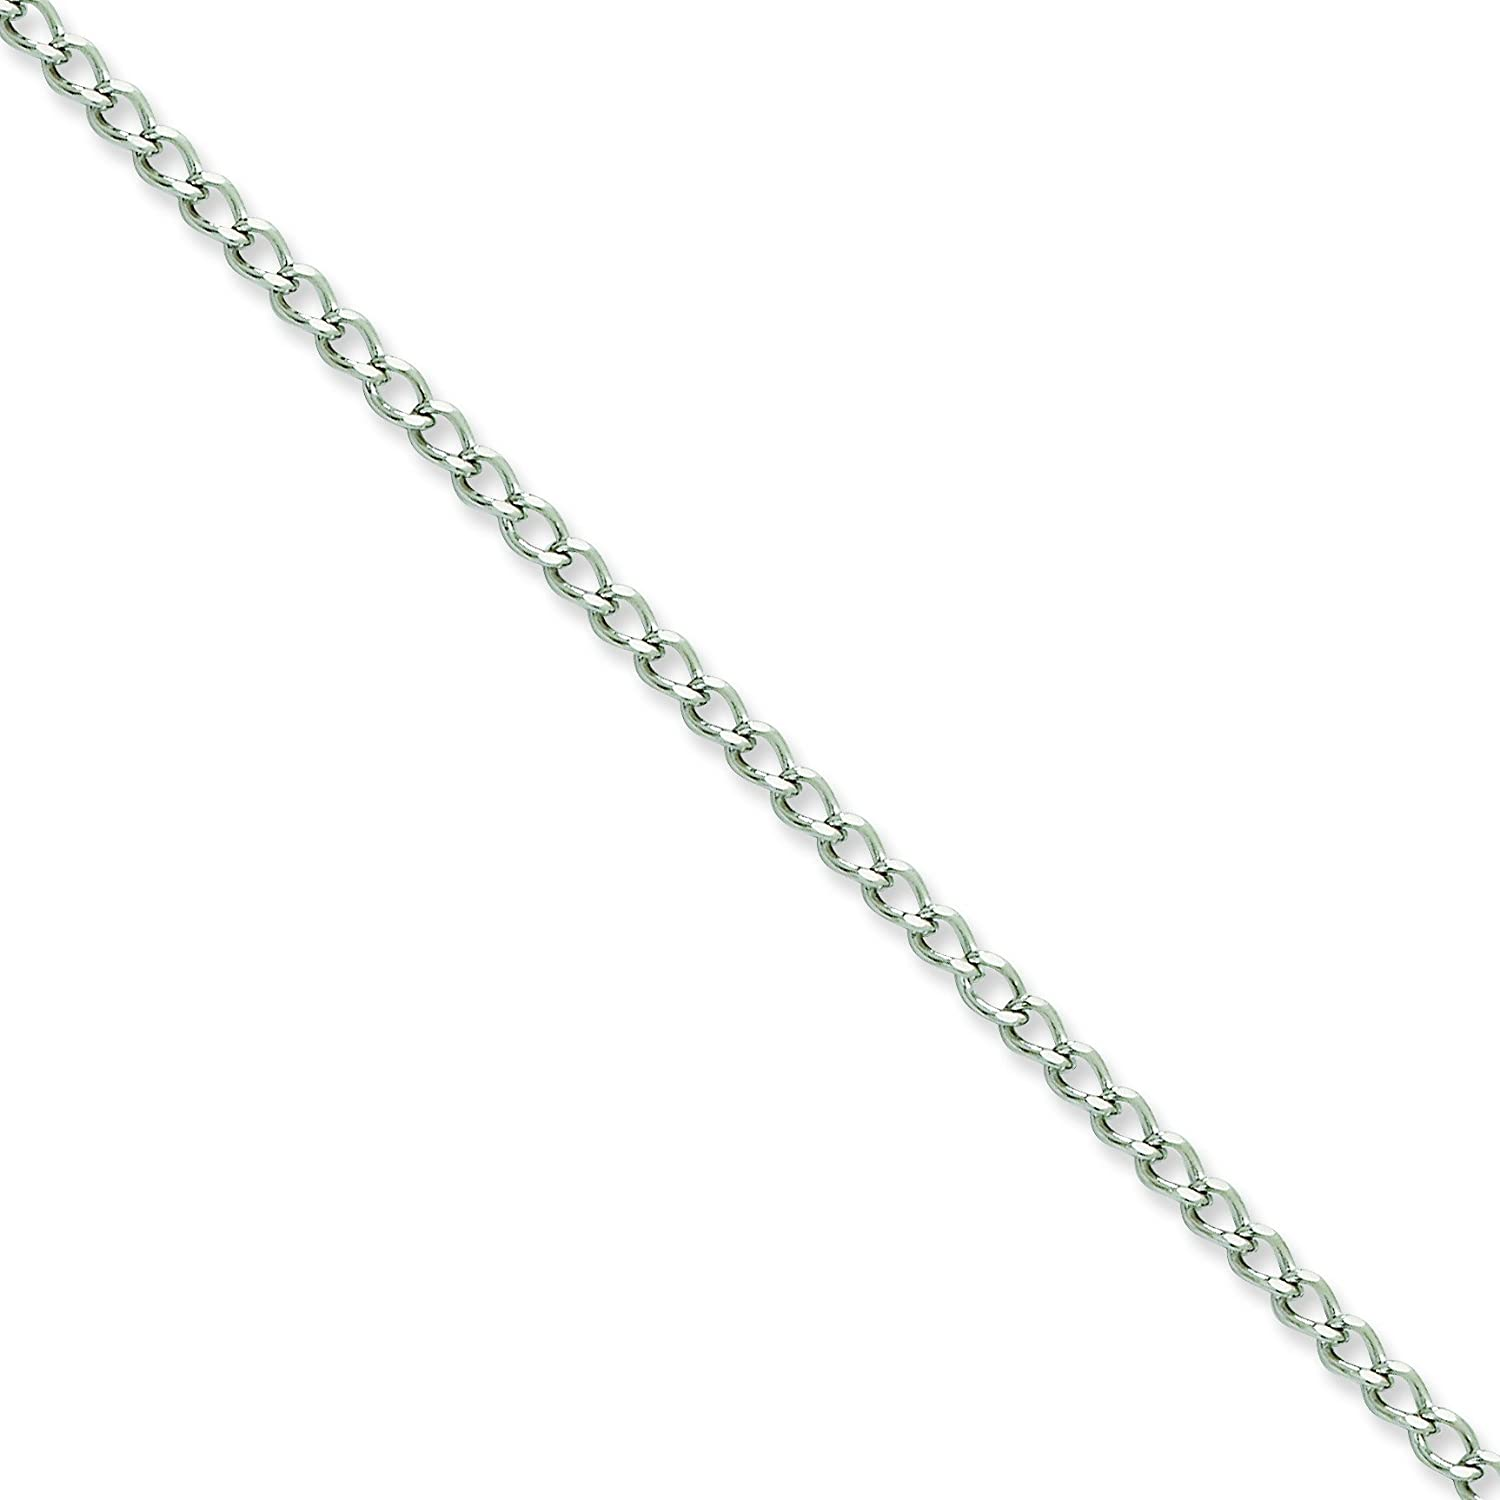 Stainless Steel 3mm Curb Chain